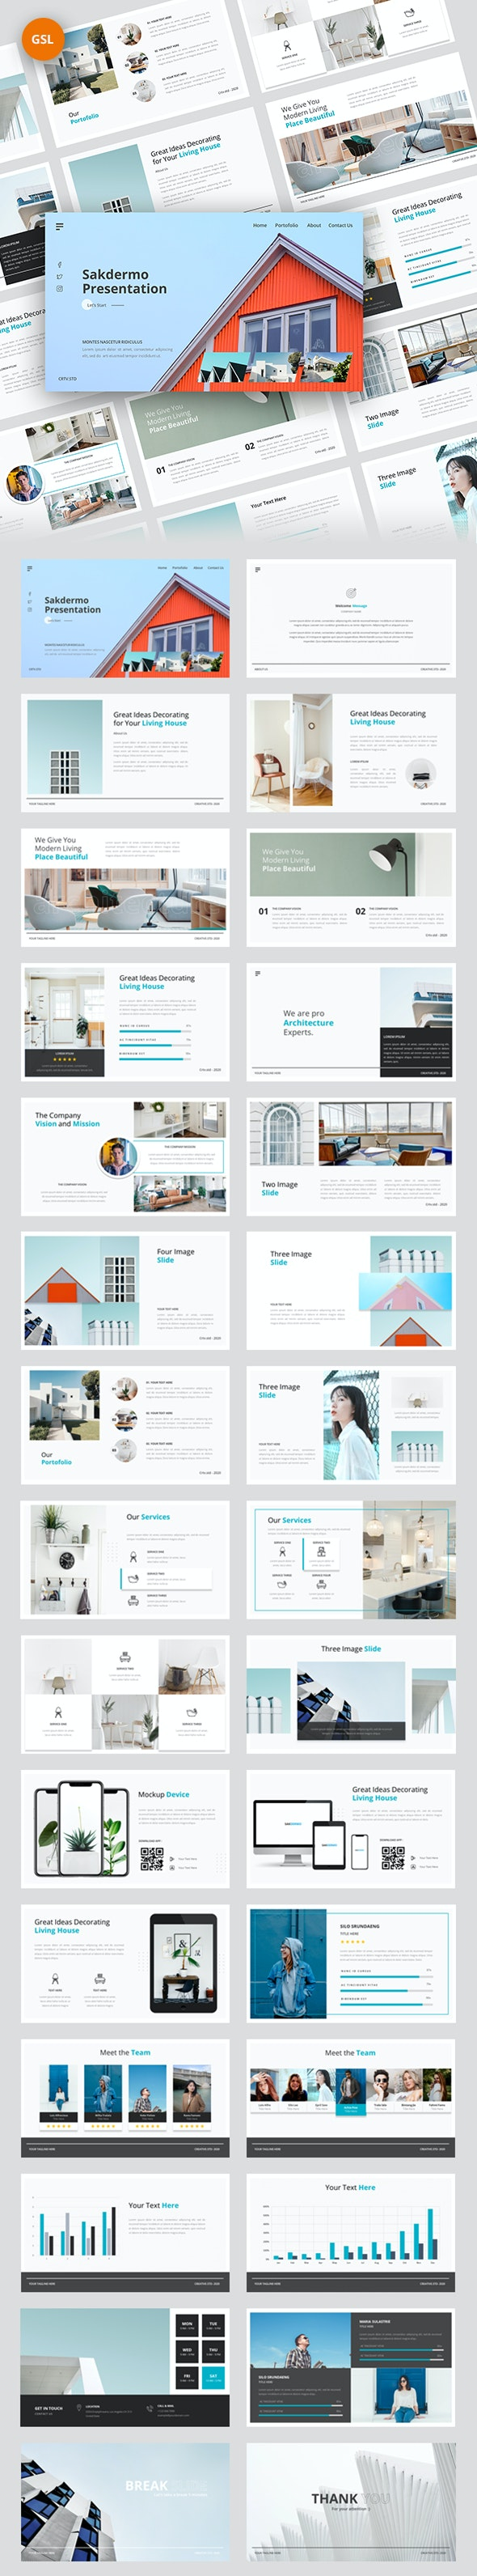 Sakdermo Multipurpose Google Slides Template - Google Slides Presentation Templates